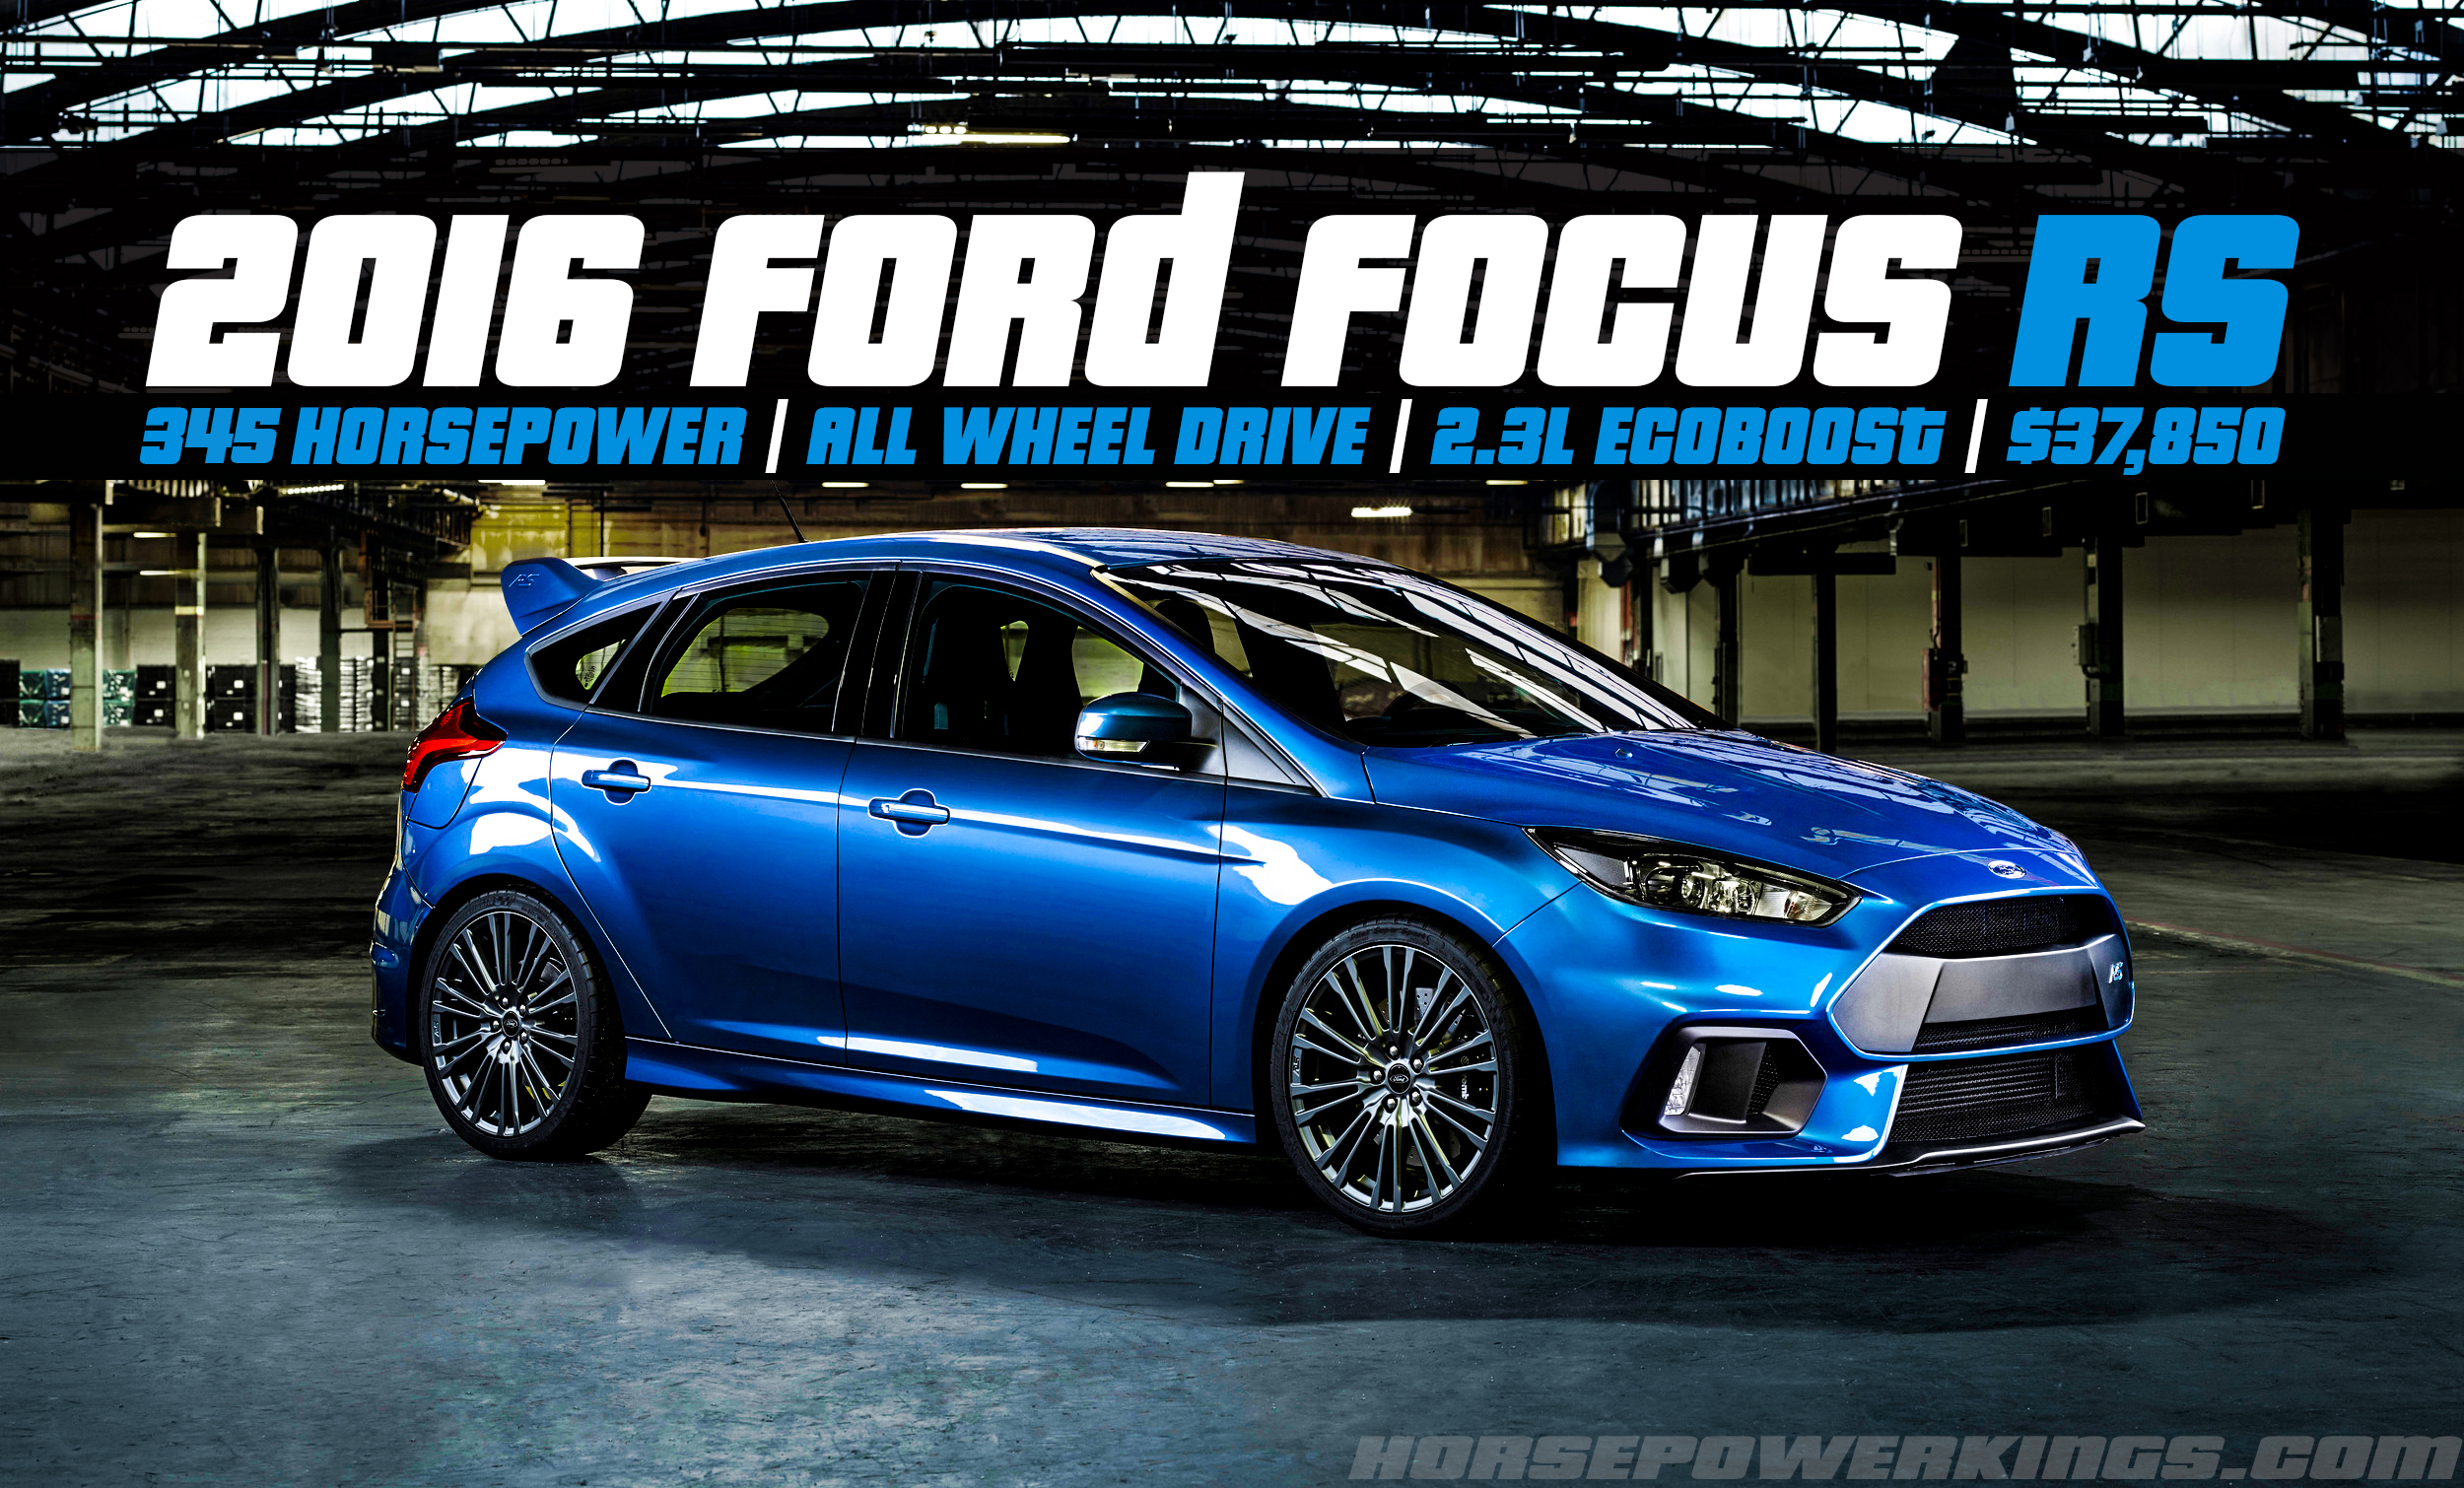 update 2016 ford focus rs revealed 350 hp 2 3l ecoboost and awd w torque vectoring 37 850. Black Bedroom Furniture Sets. Home Design Ideas